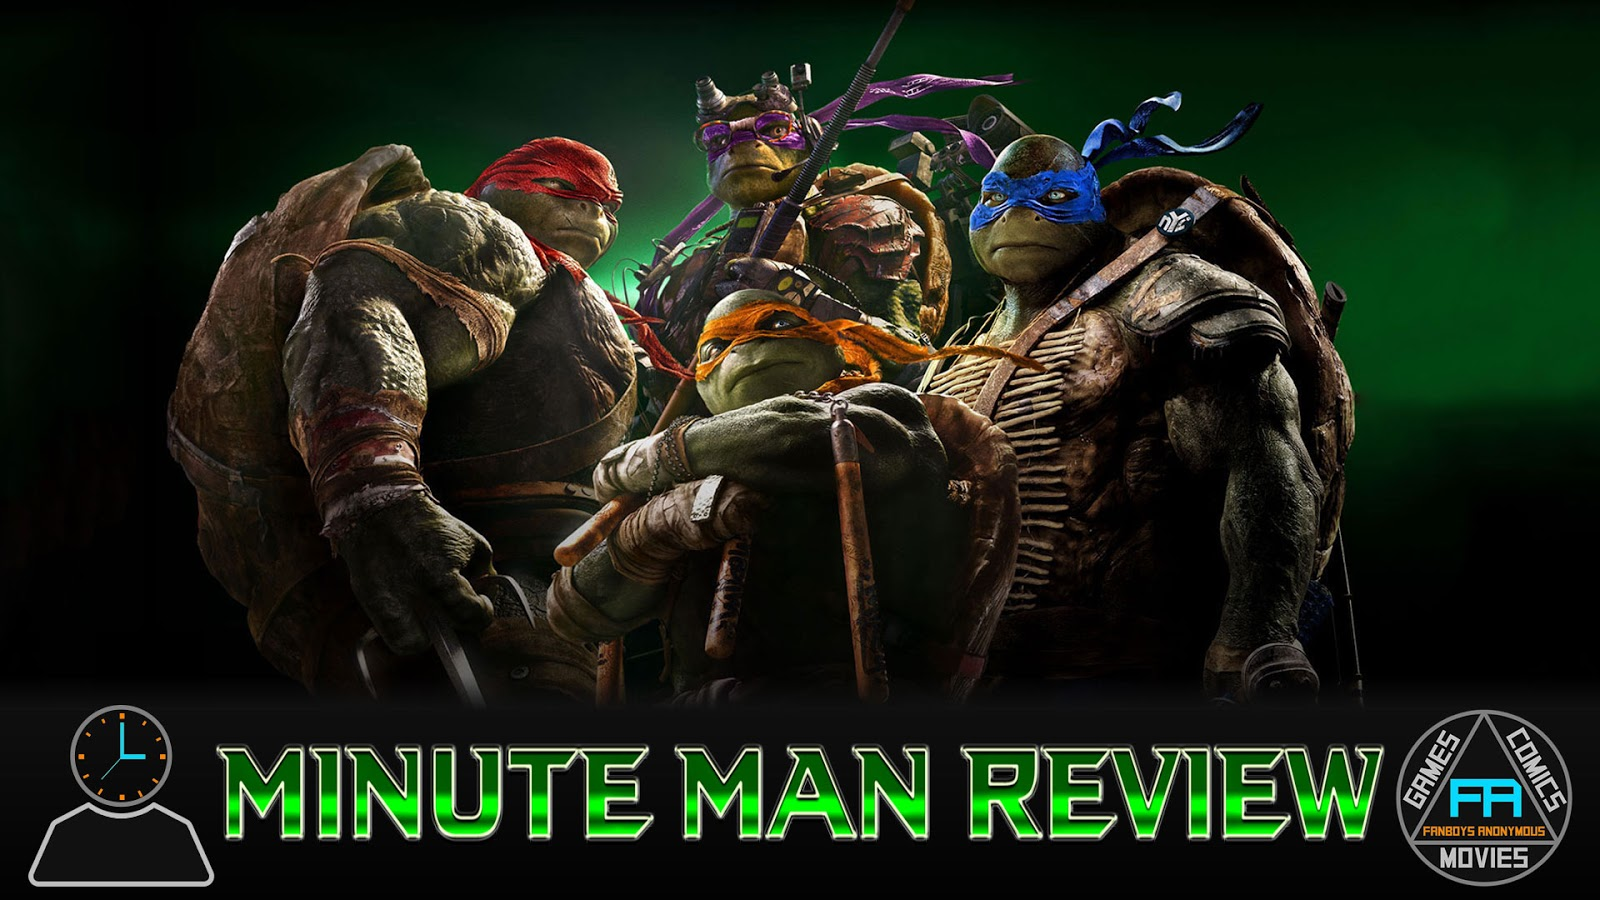 movie review Teenage Mutant Ninja Turtles: Out of the Shadows podcast